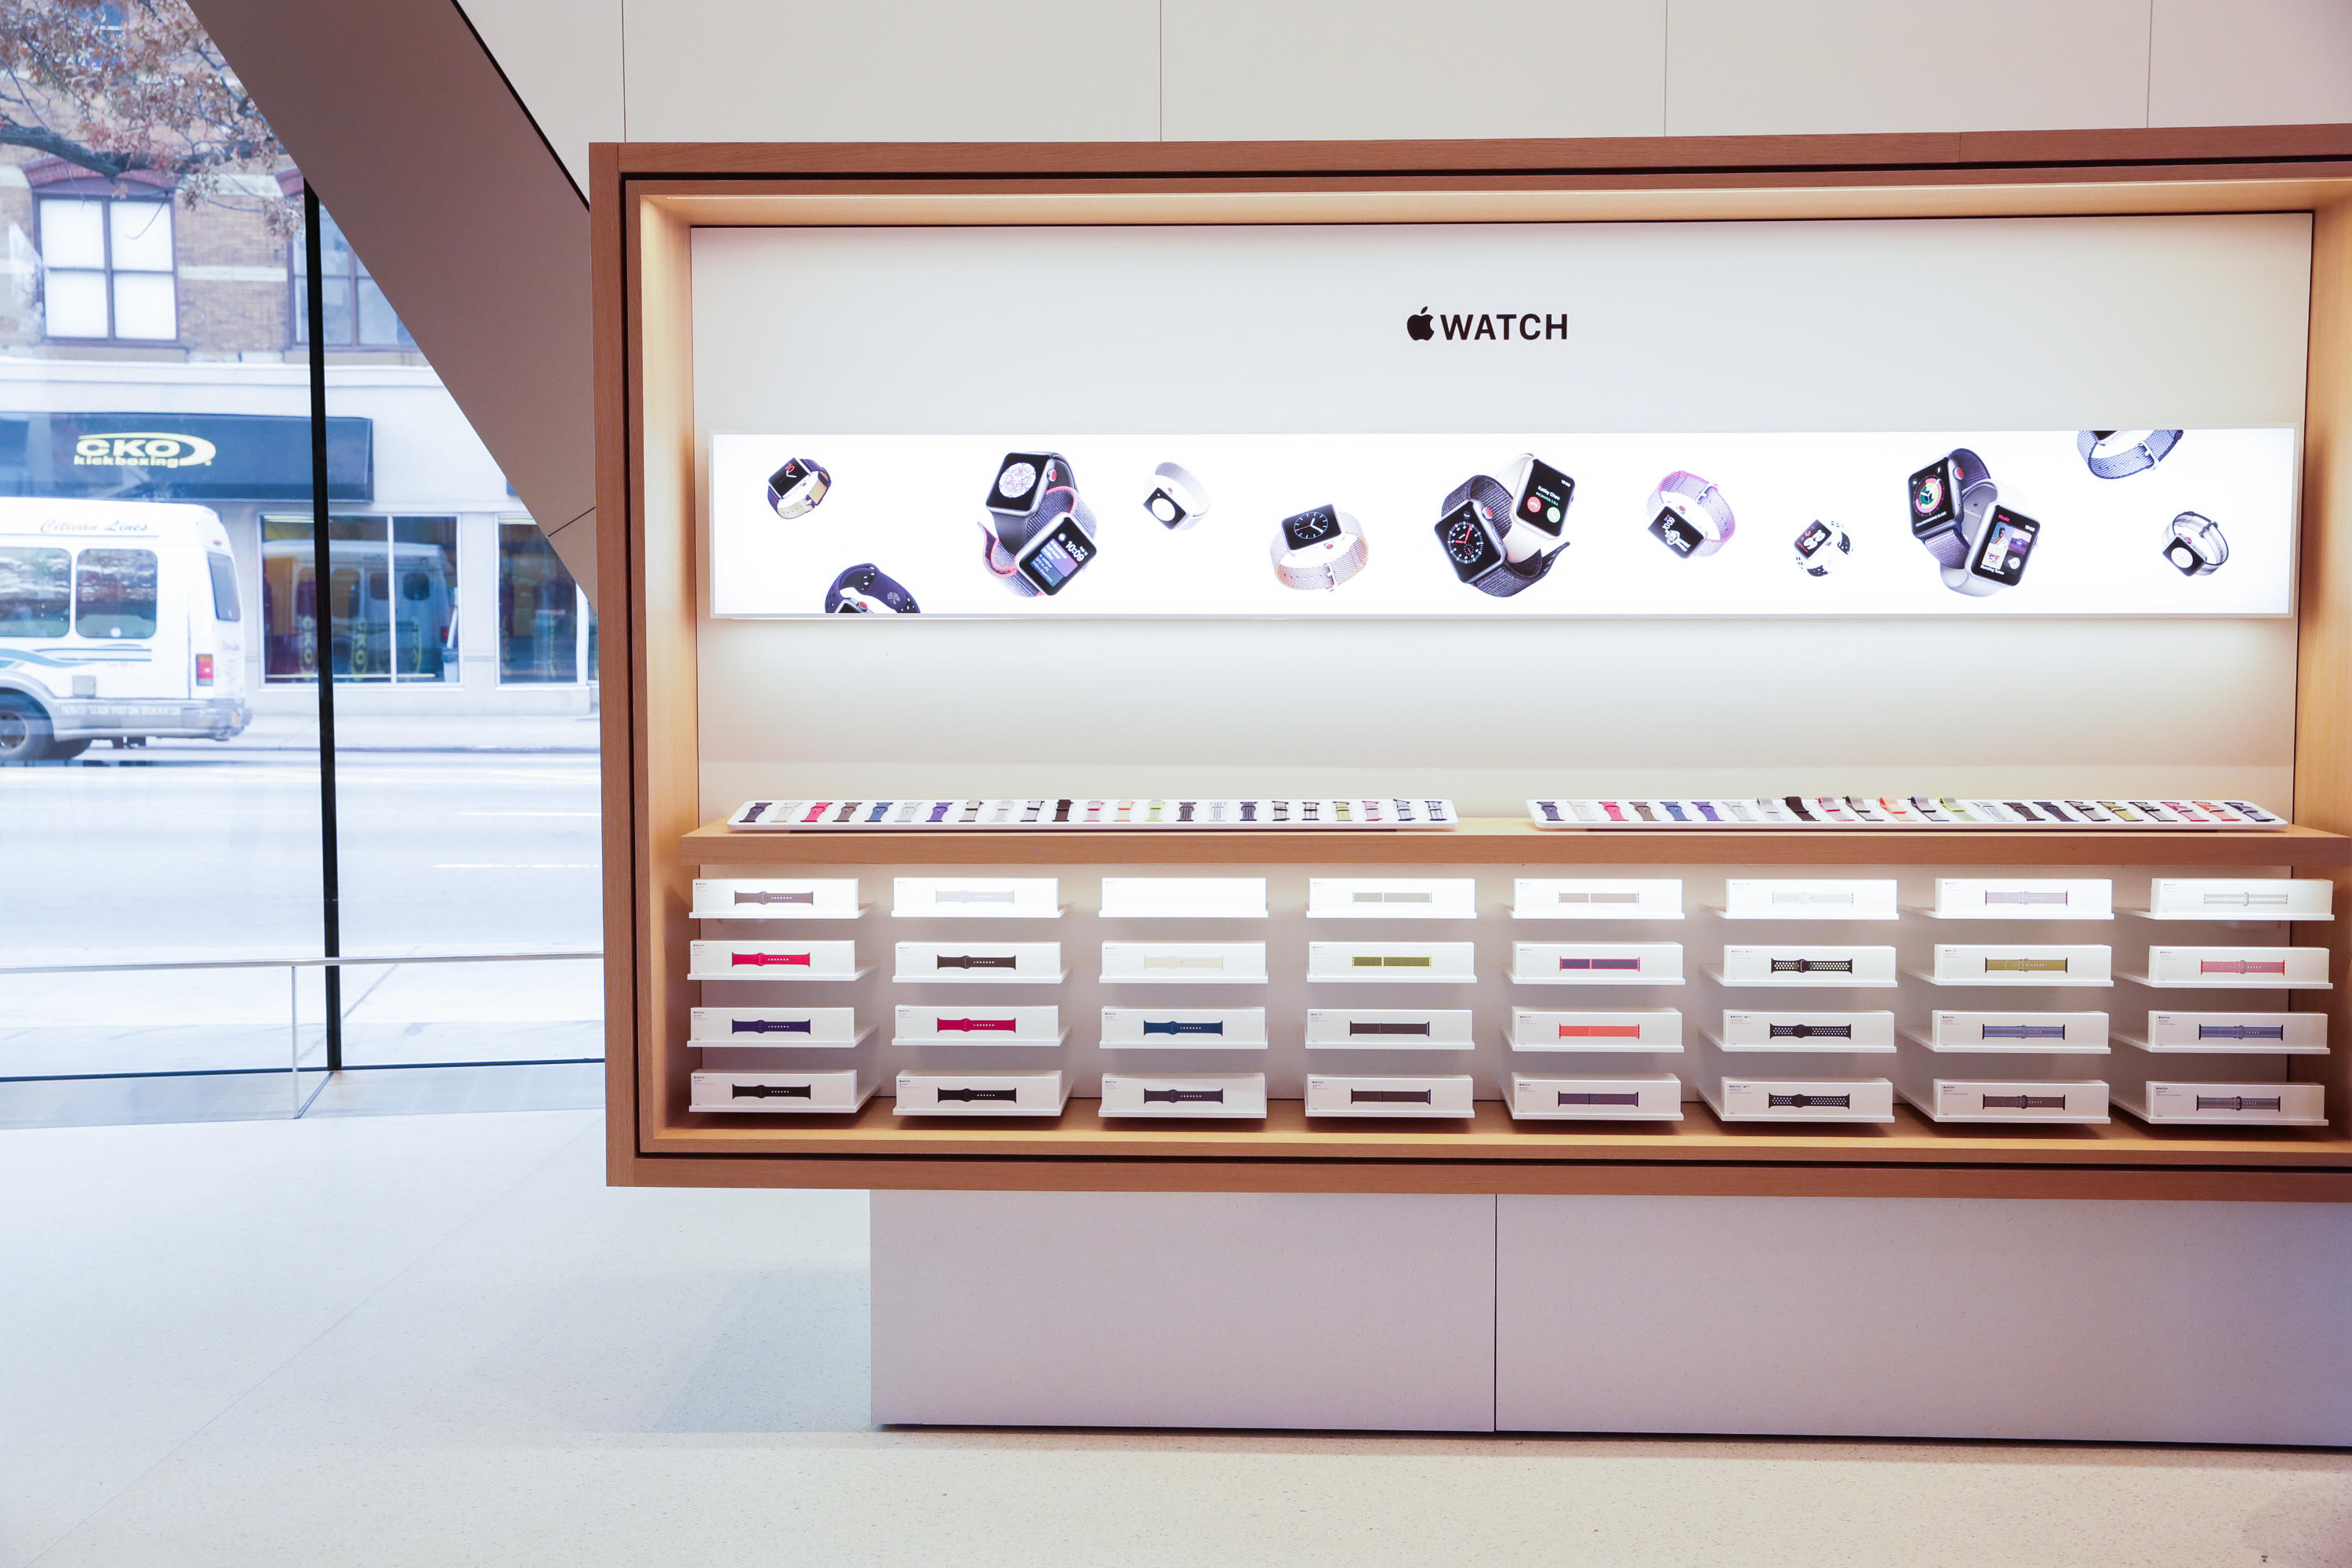 Shelves stocked with Apple Watches